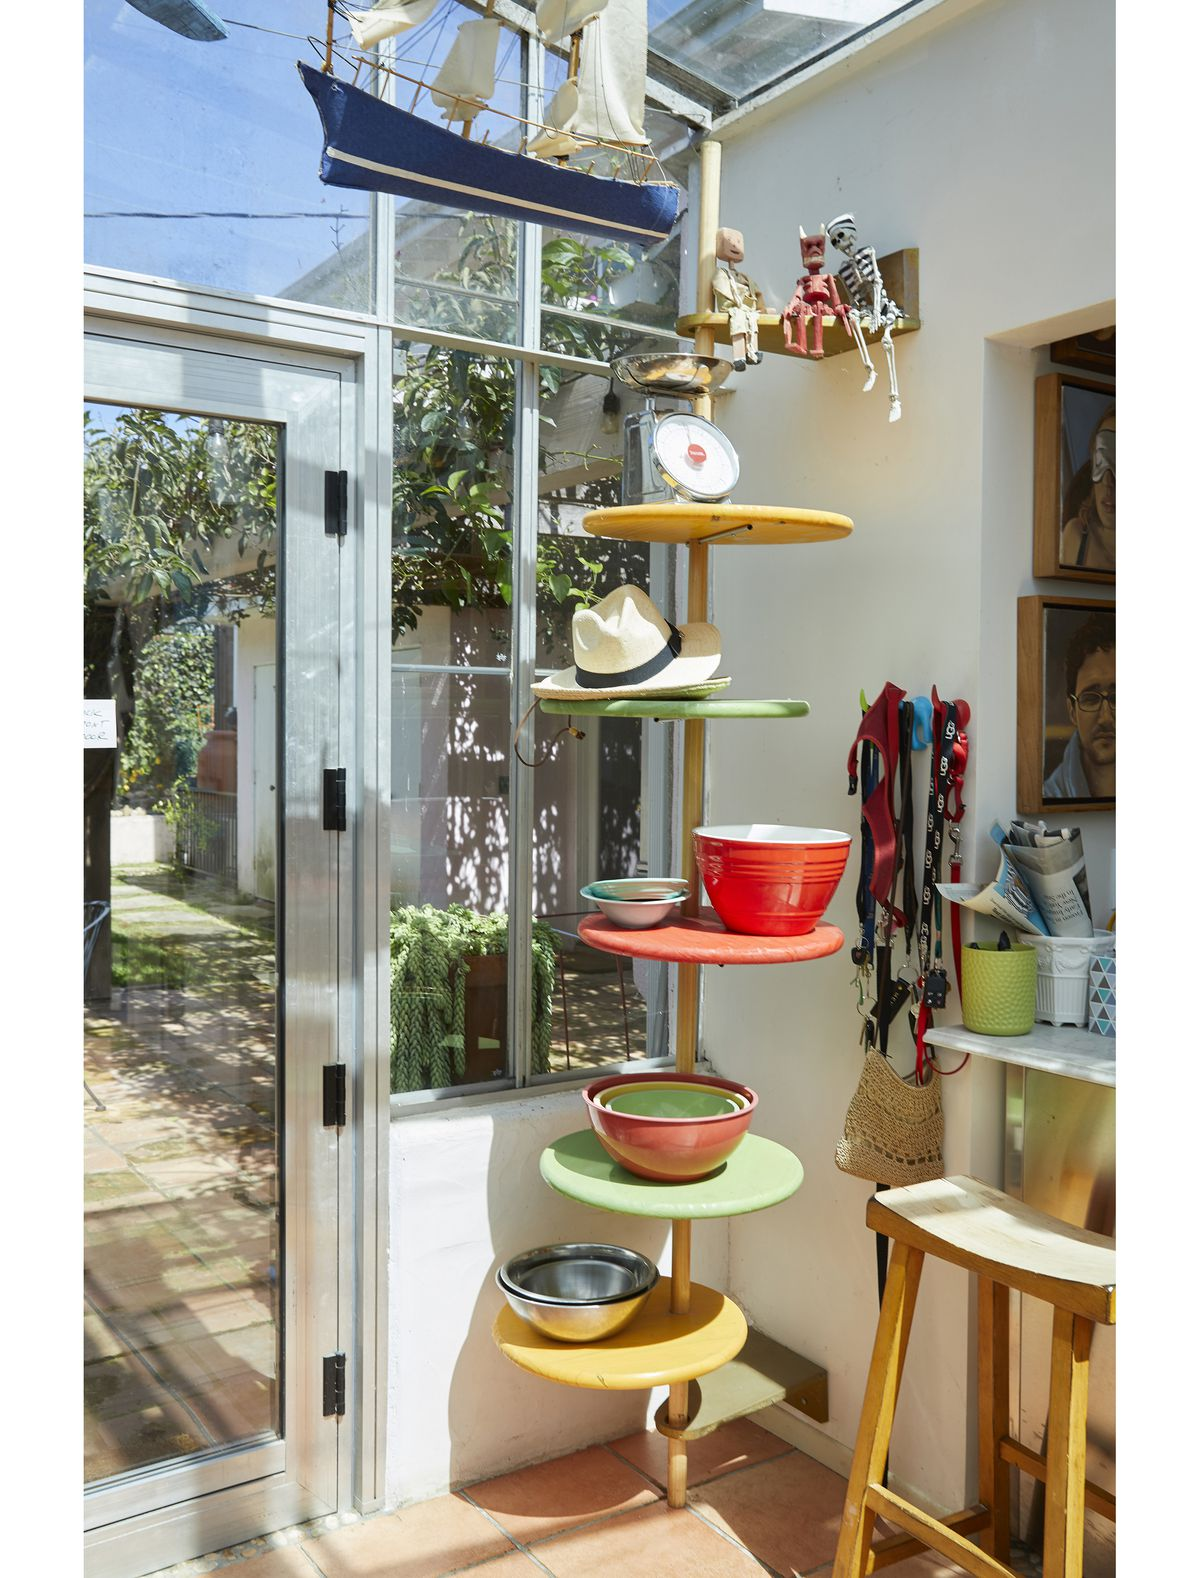 The corner of a room with a long pole that has many shelves. On the shelves are colorful bowls.